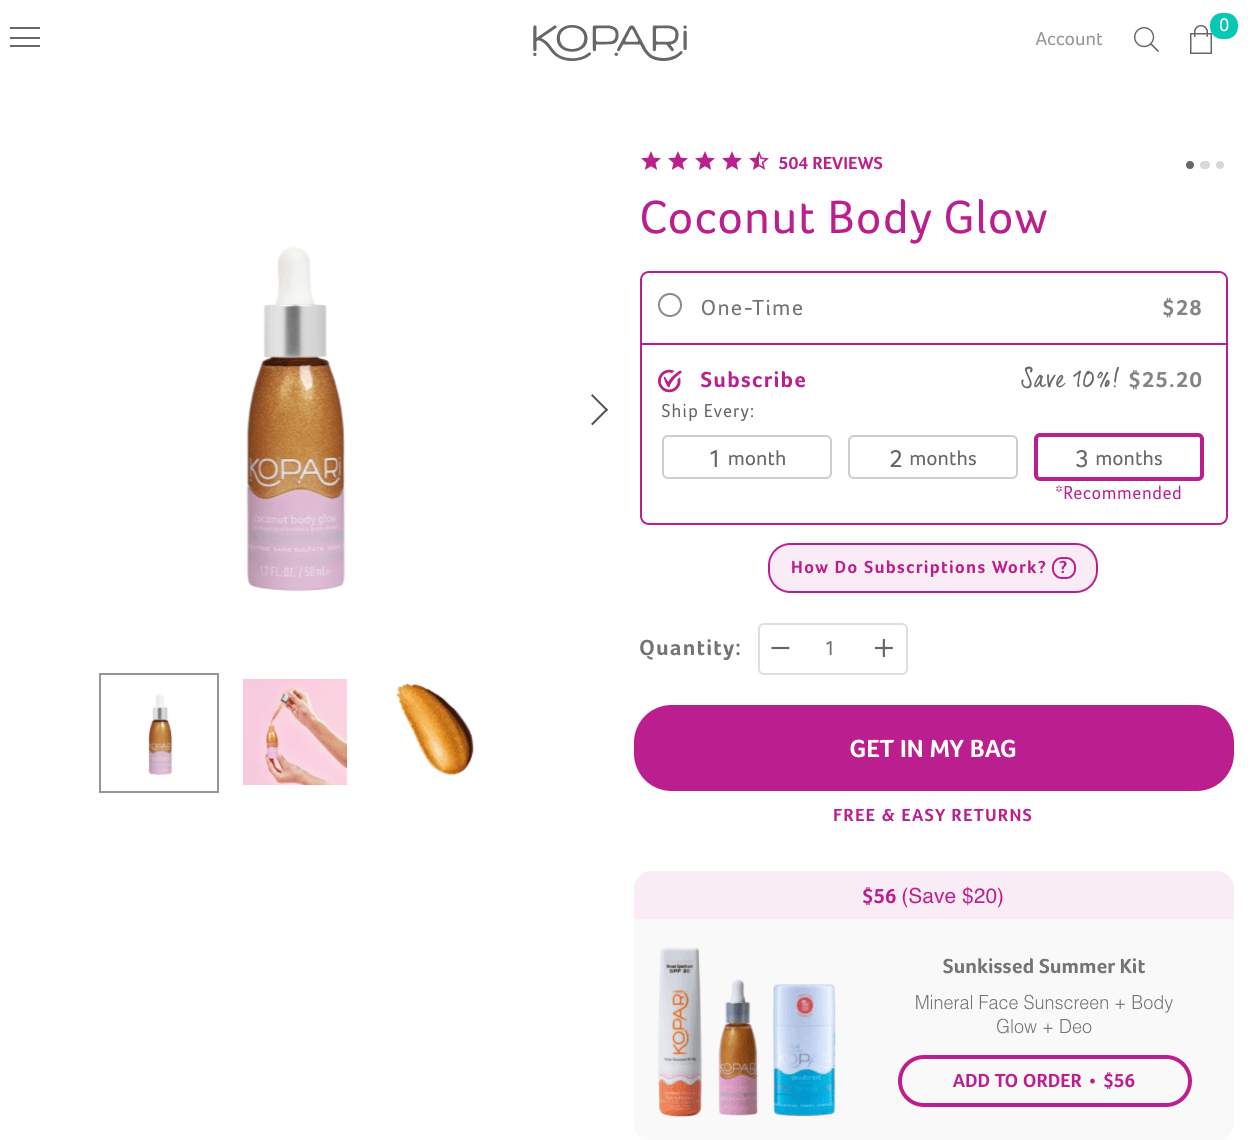 Kopari Beauty offers replenishment subscriptions to individual products.